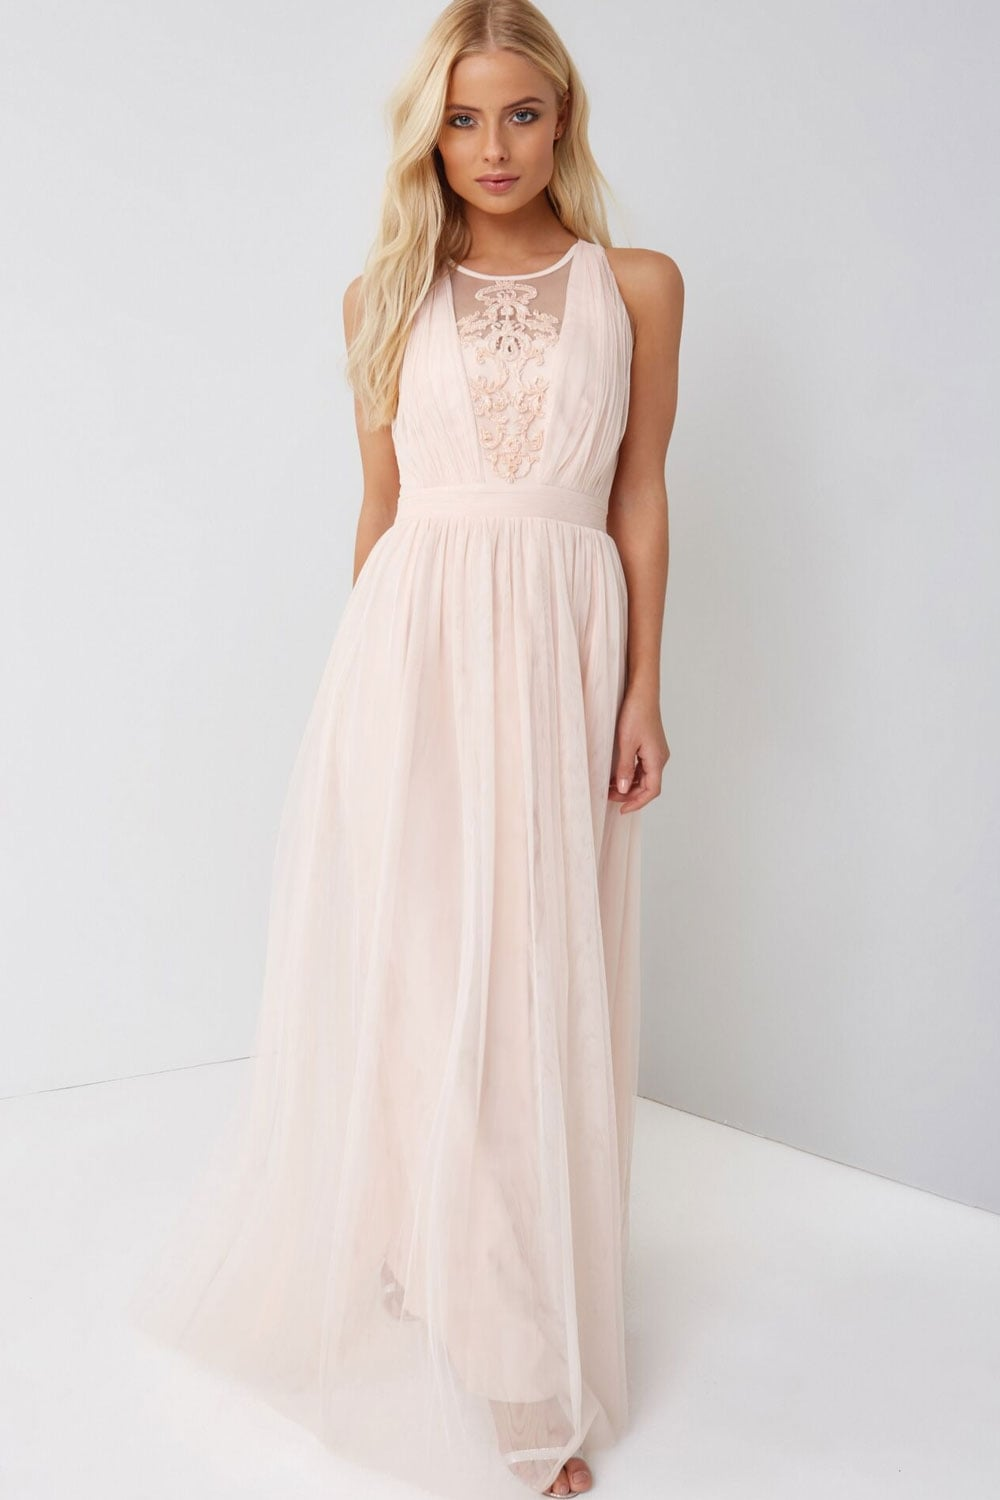 Maxi Prom Dresses - Up to 50% off at ShopStyle UK